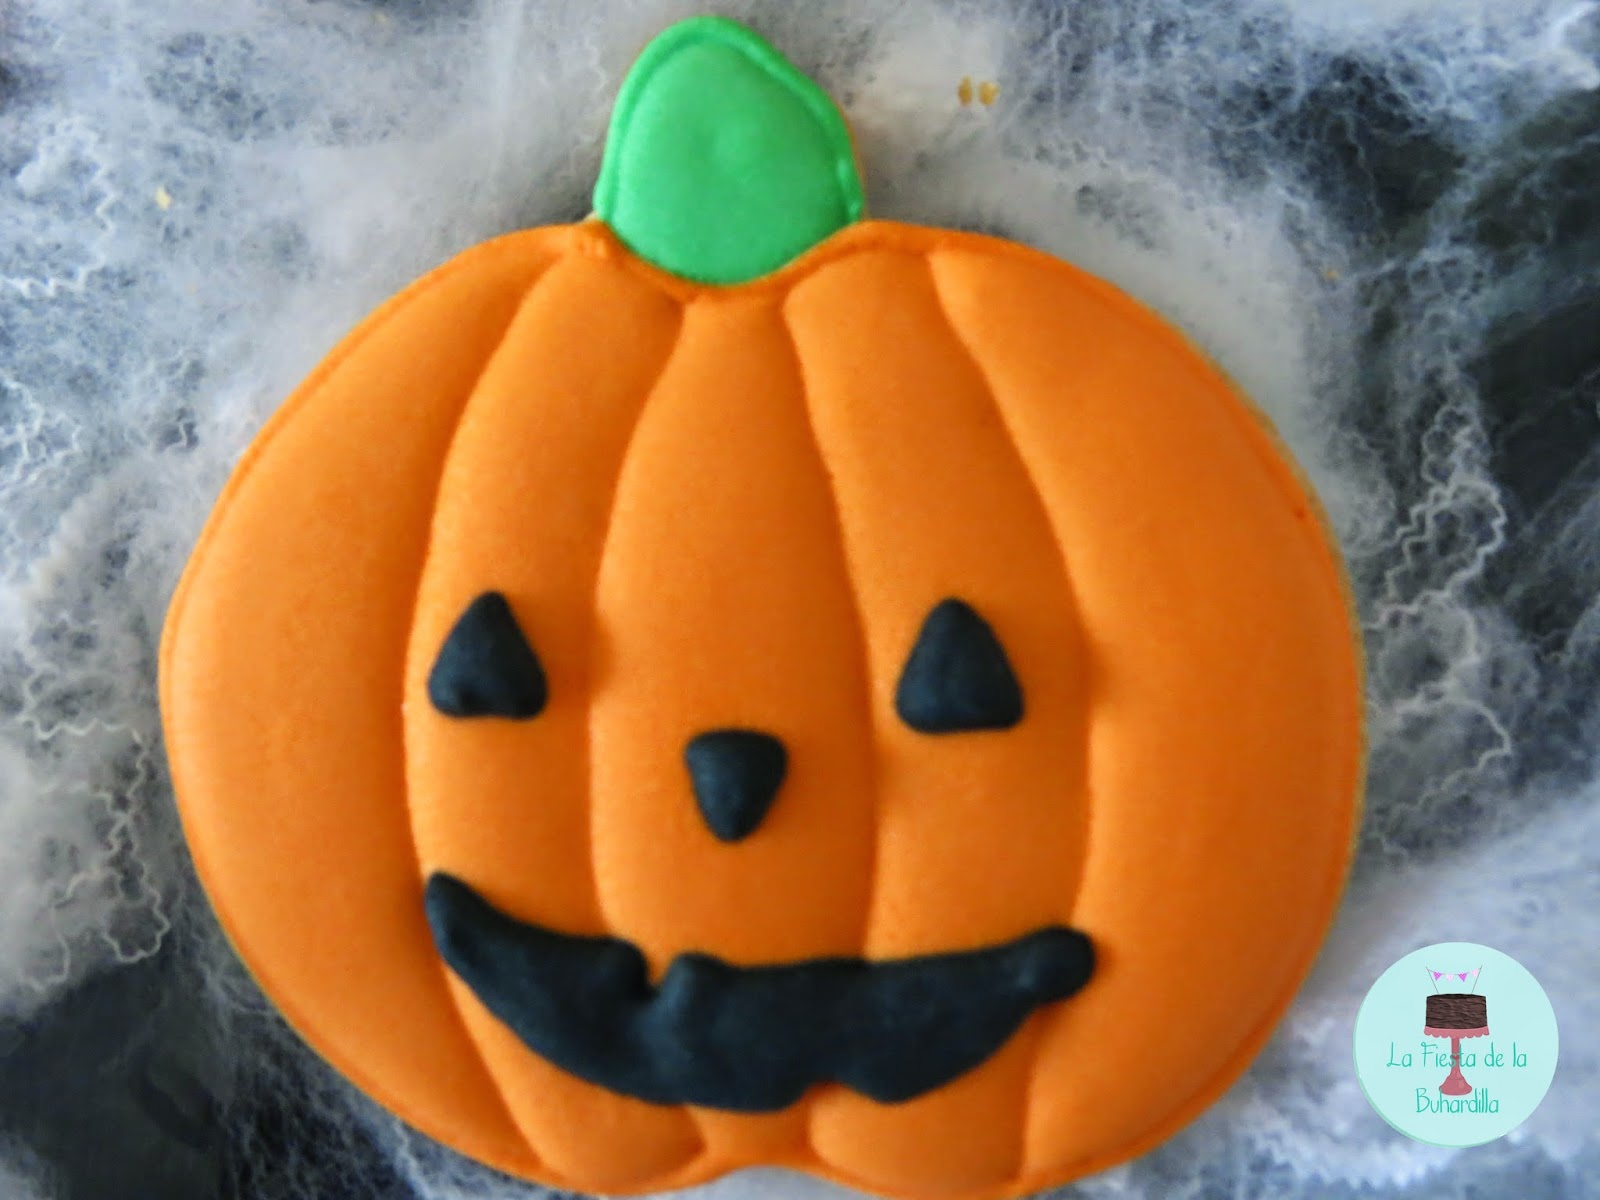 Galleta halloween calabaza